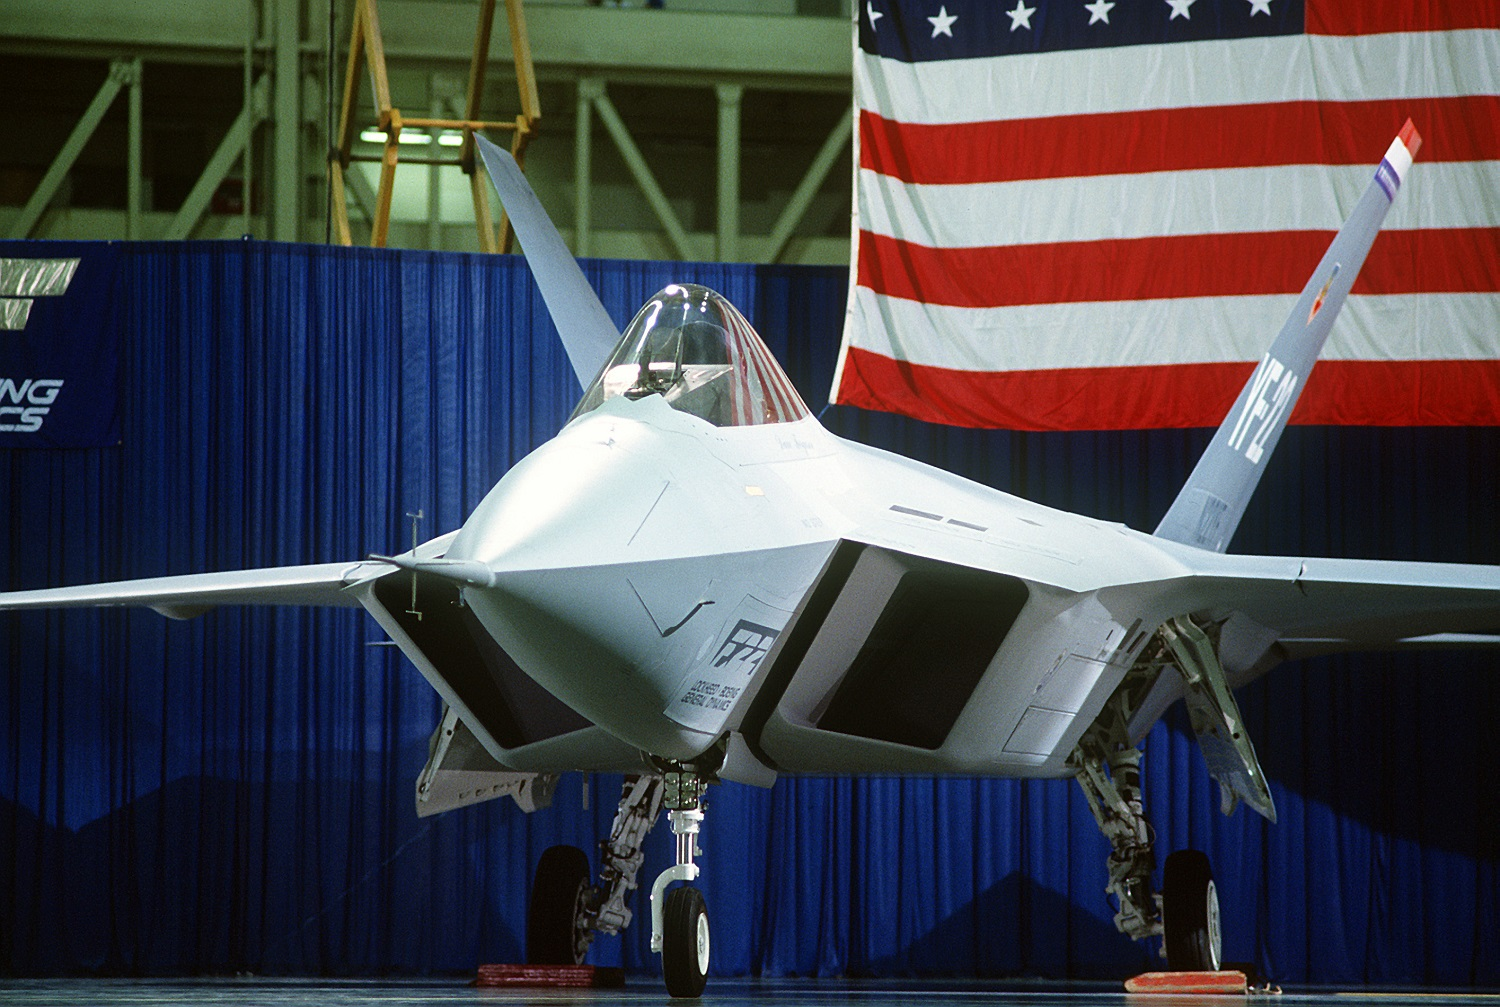 The Mighty F-52 Fighter: The Story of a Stealth Jet That Never Happenned